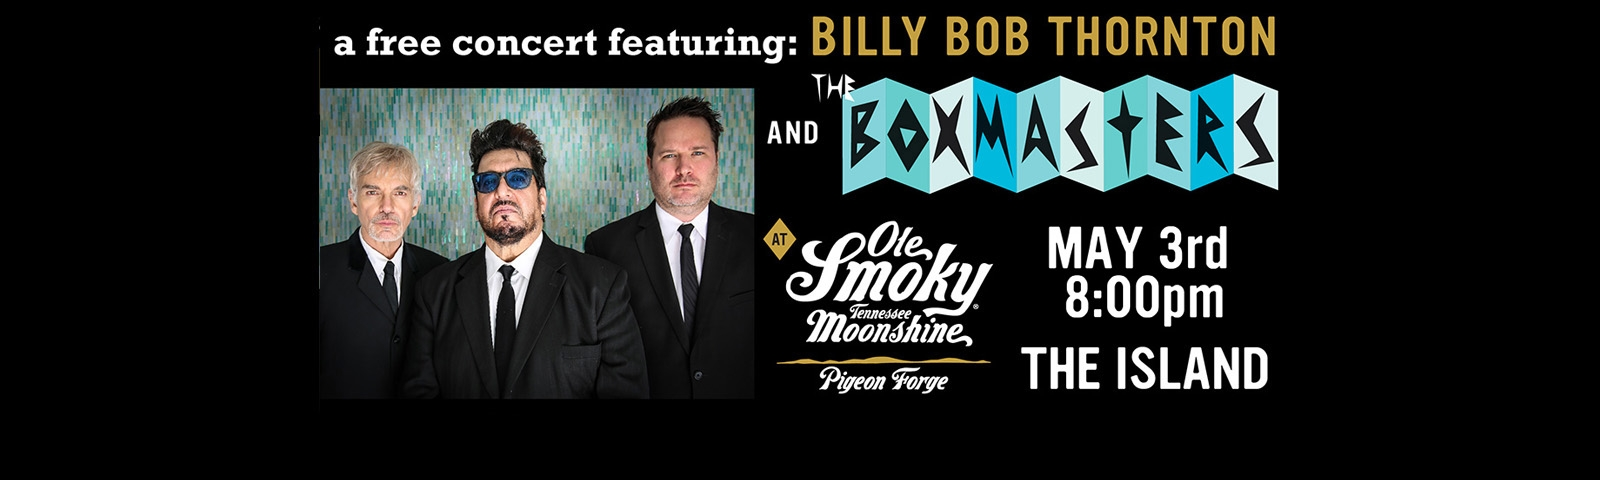 Concert Featuring Billy Bob Thorton and The Boxmasters